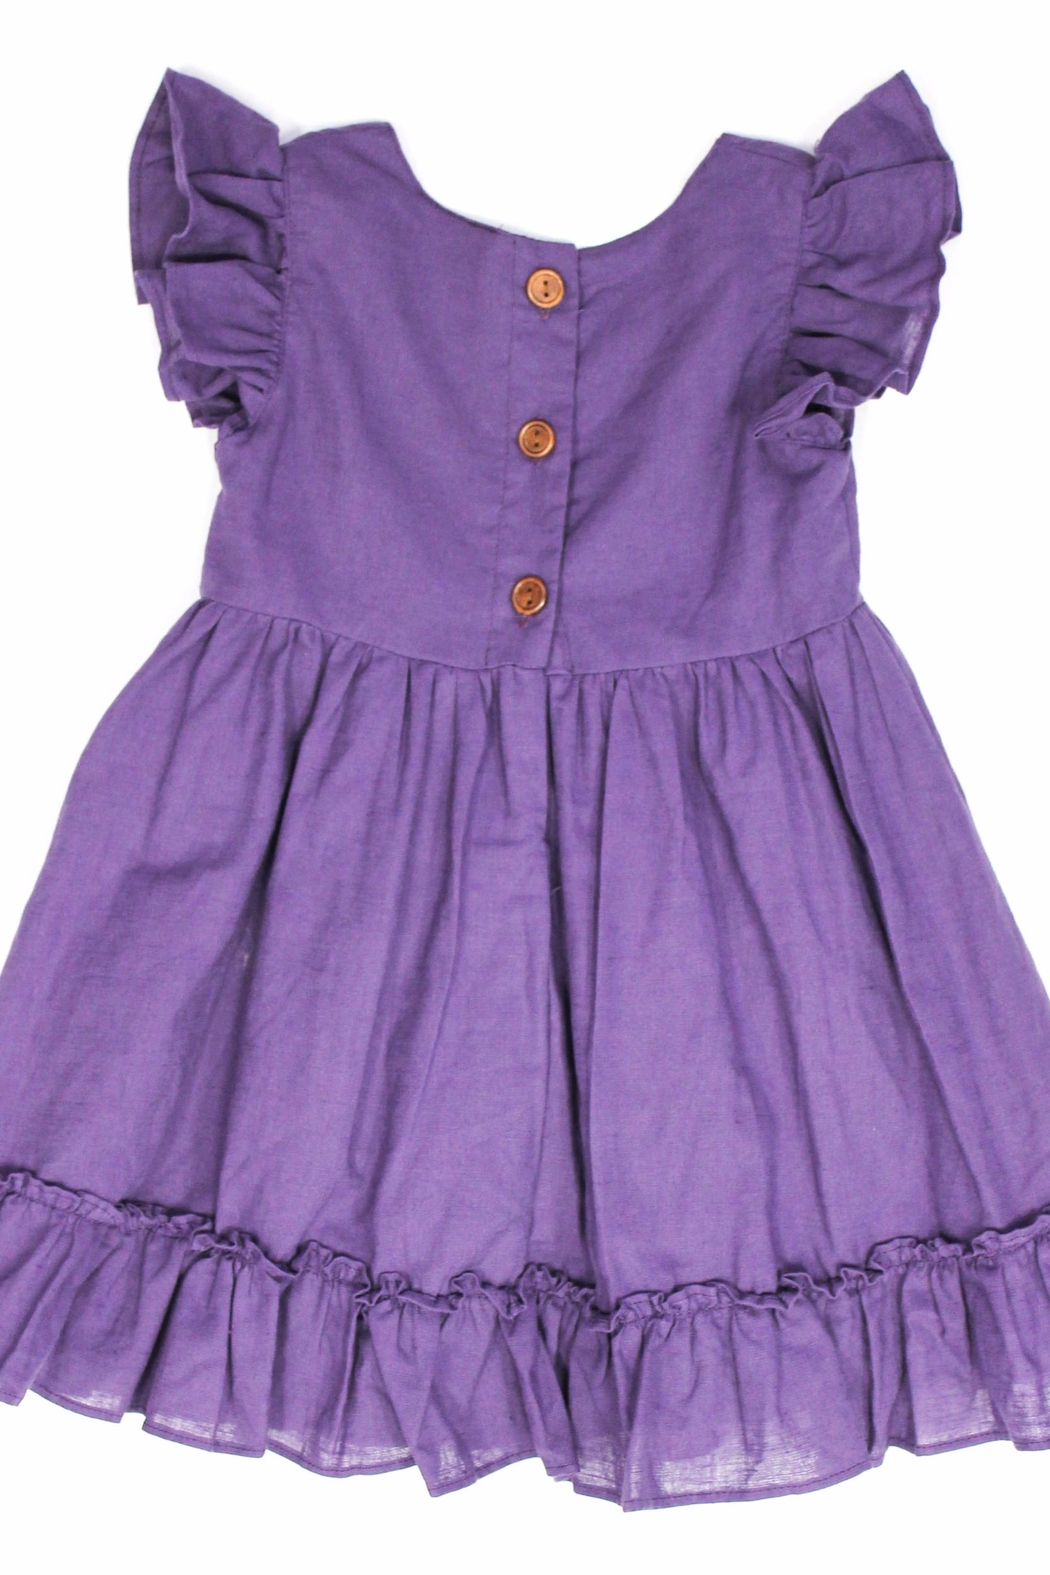 Adora-bay Purple Button Dress - Front Full Image